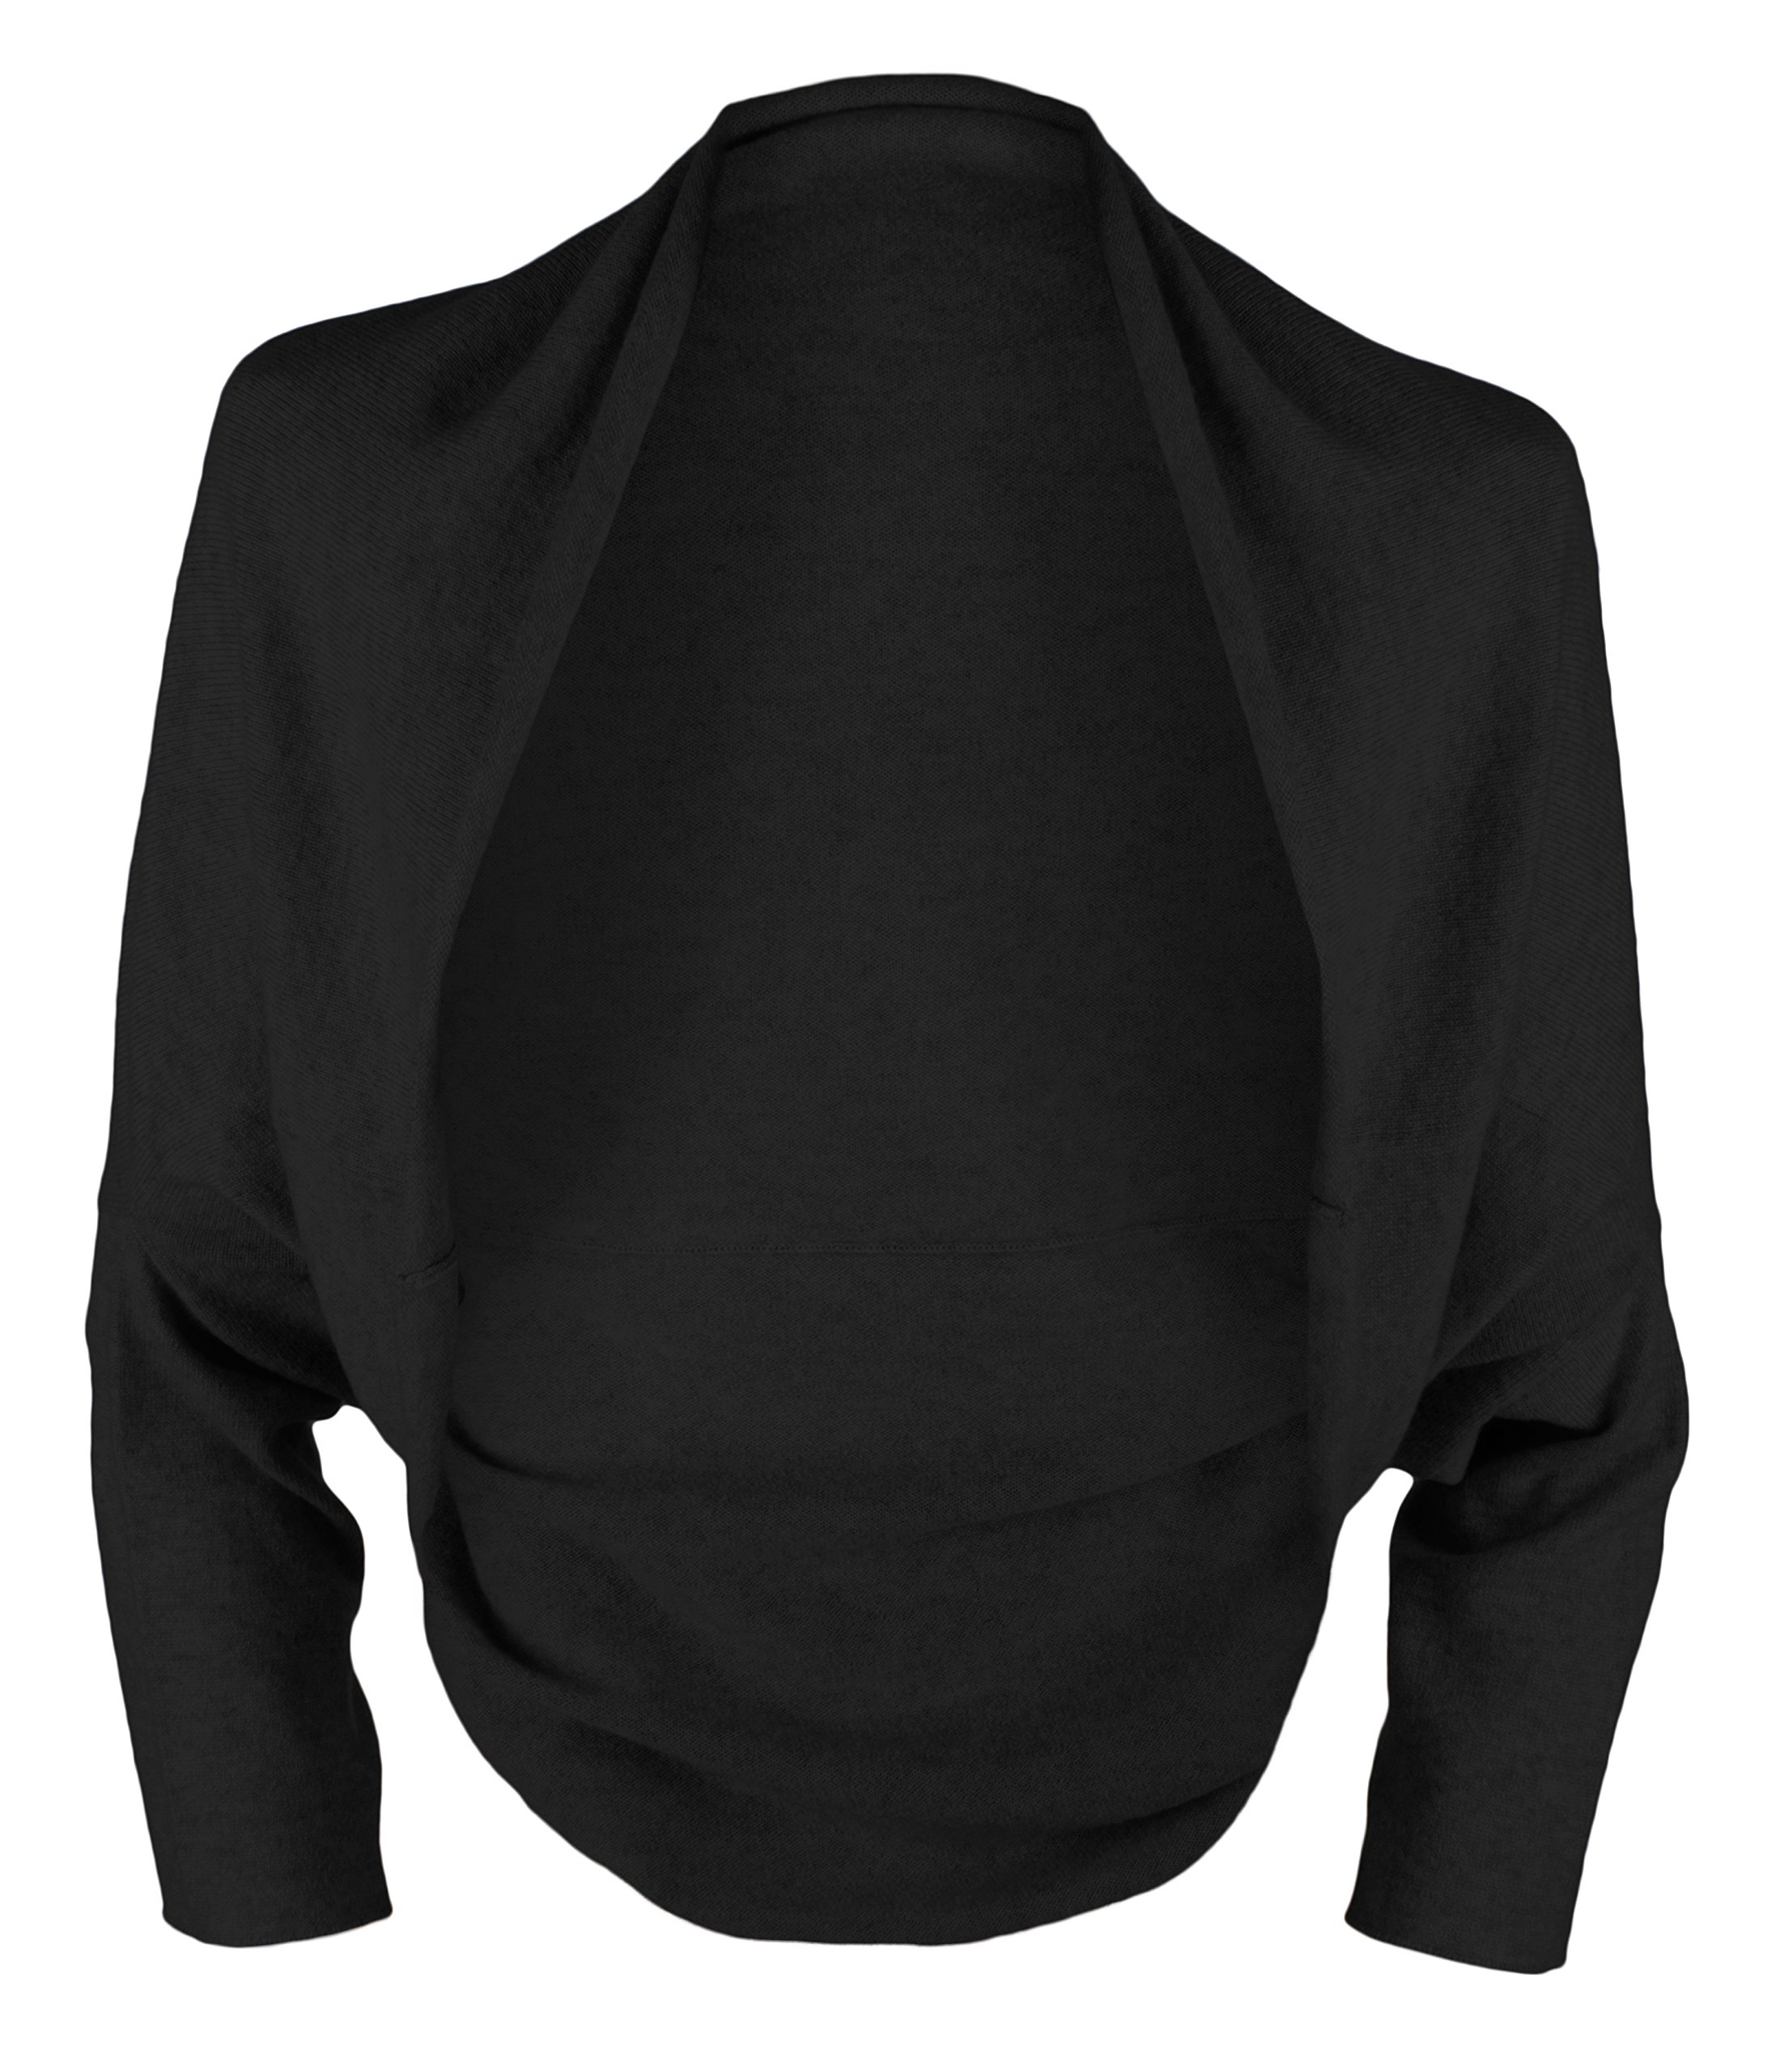 Ladies 100% Cashmere Wrap Sweater - Black - handmade in Scotland by Love Cashmere - RRP $430